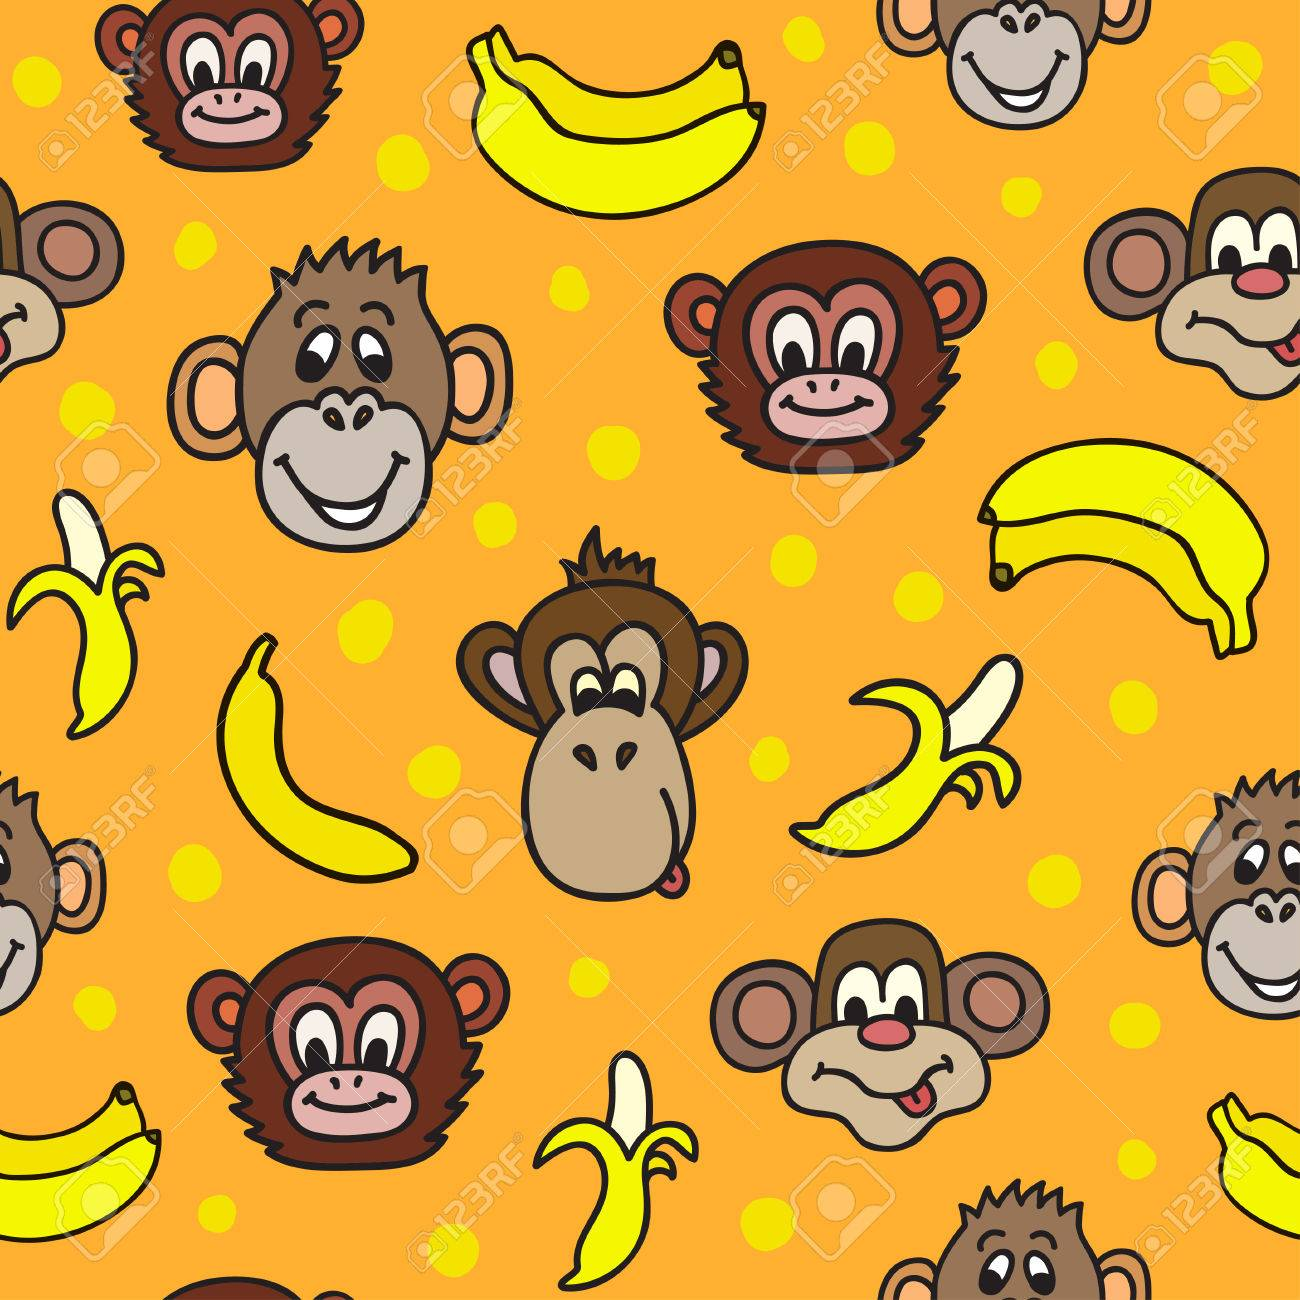 Seamless Pattern With Cute Faces Of Monkeys And Bananas Kids